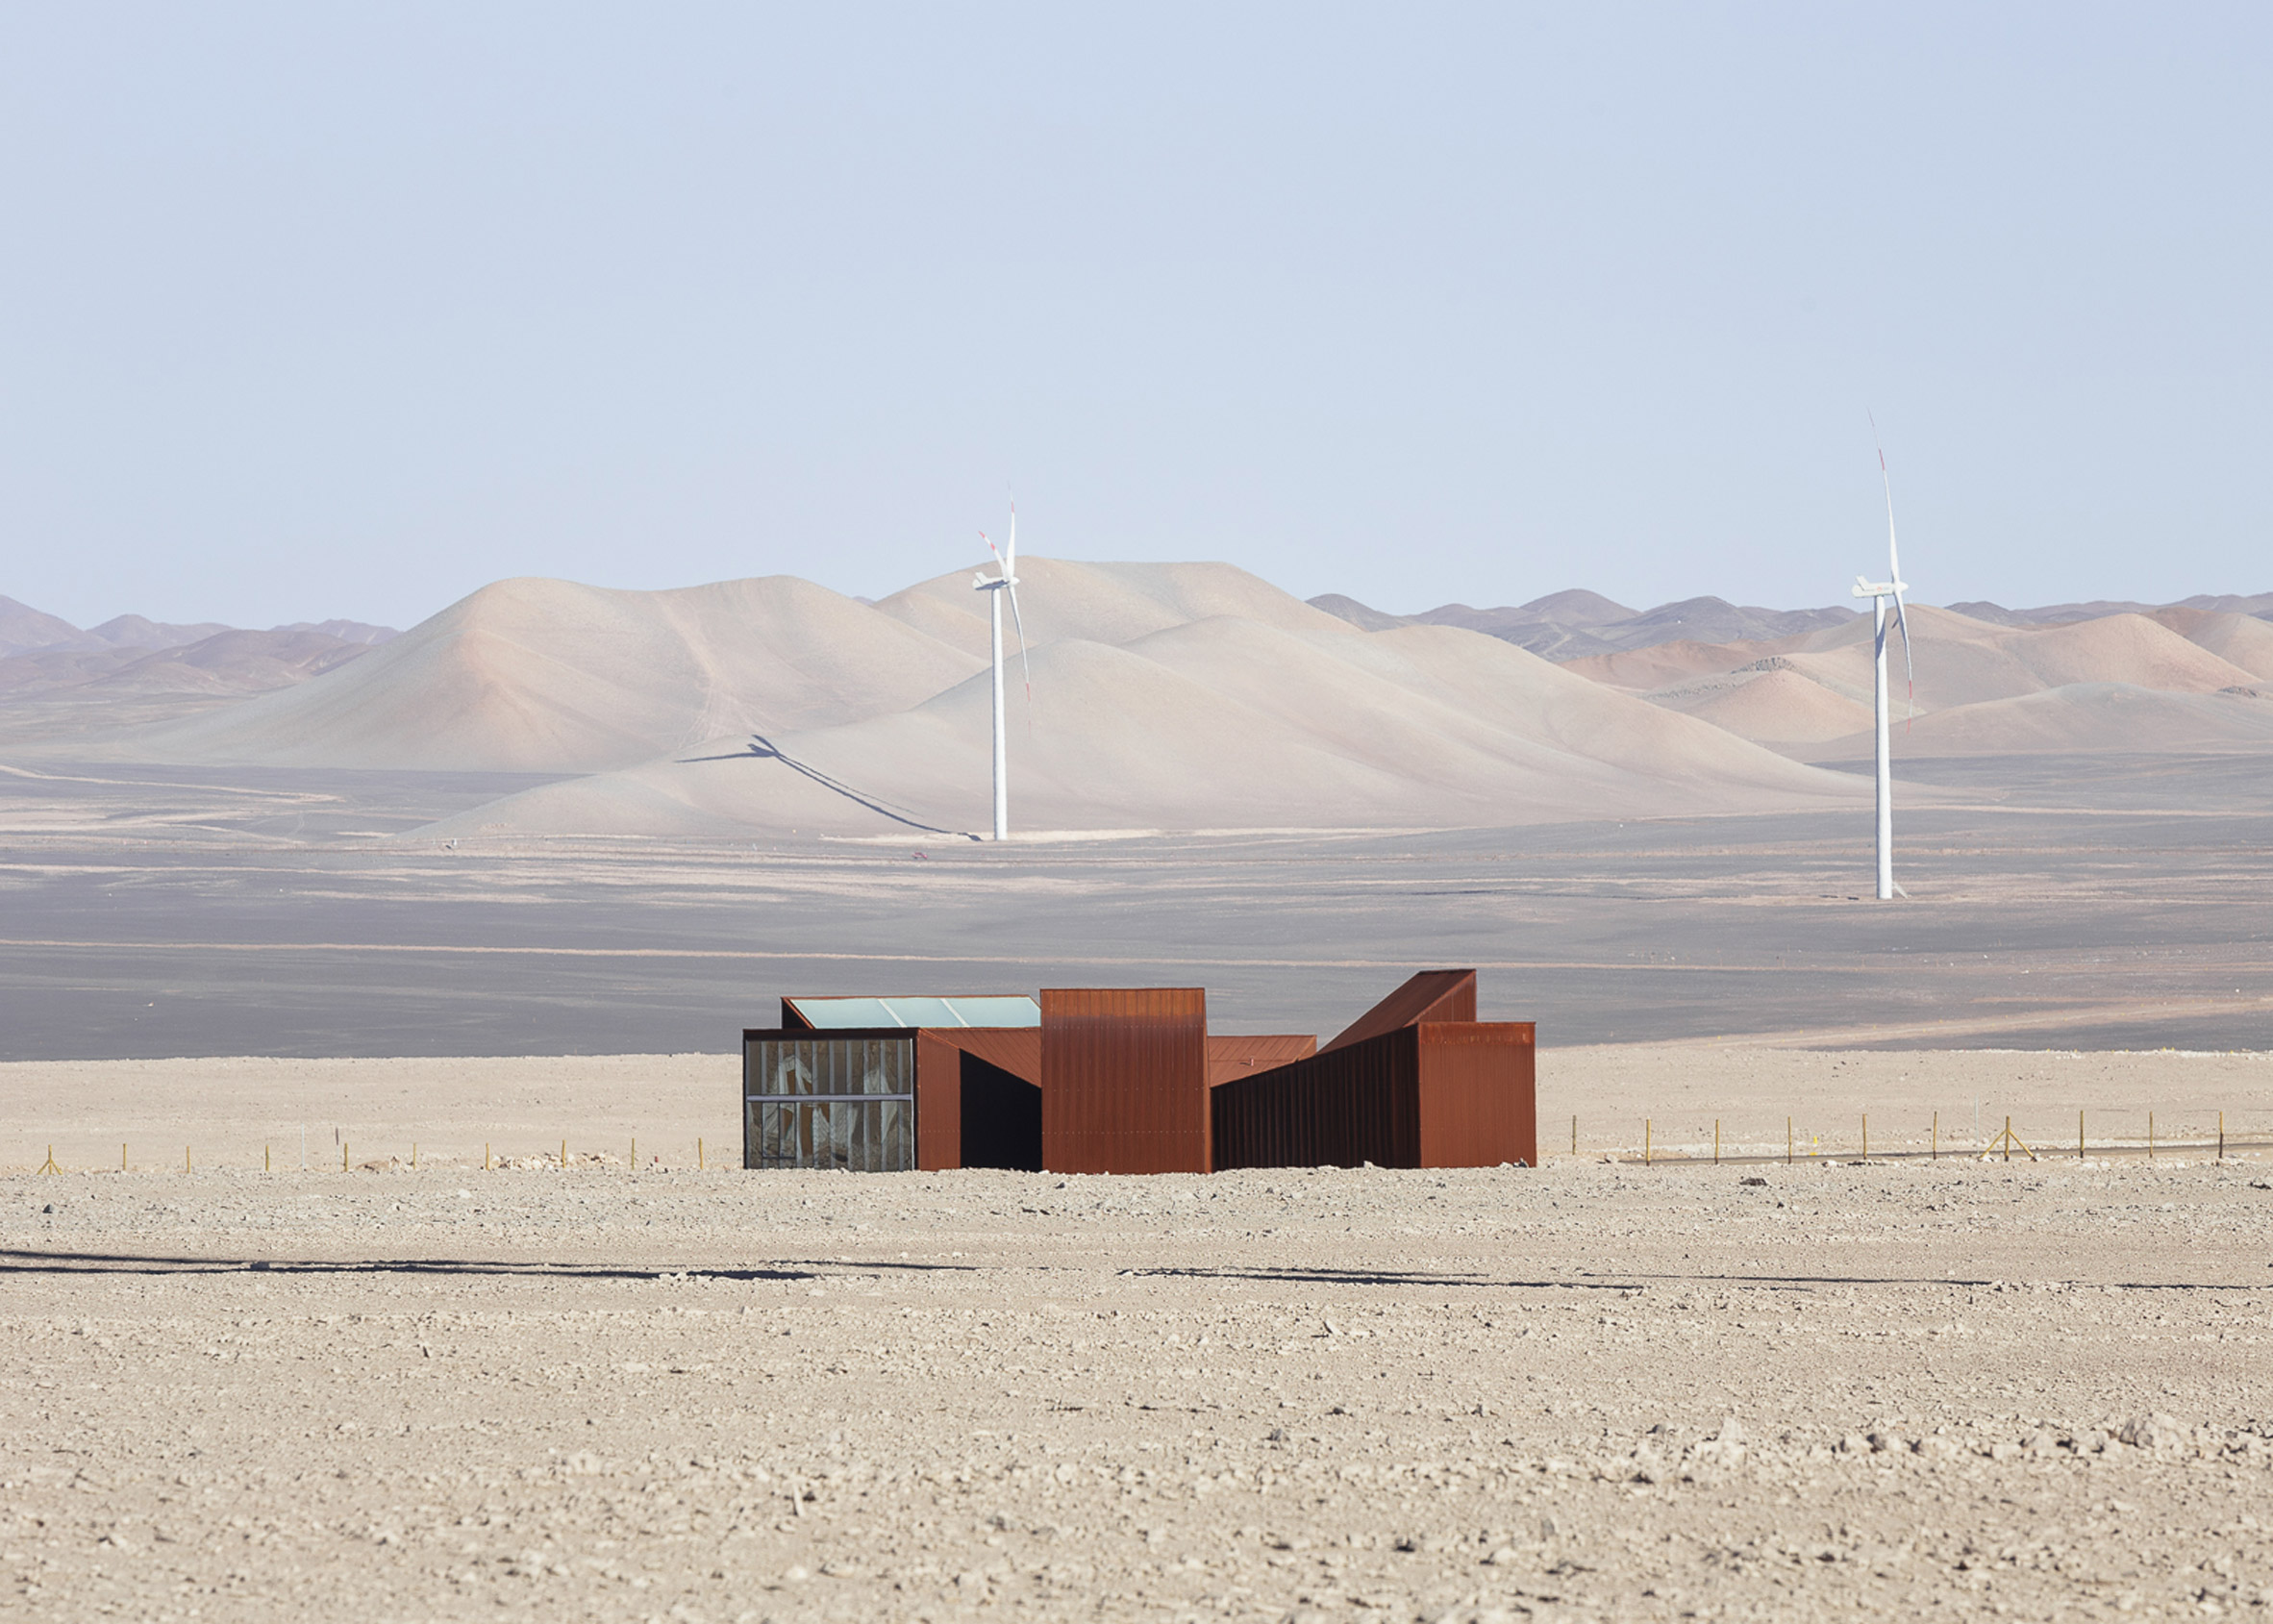 Center of Interpretation of the Desert by Emilio Marín and Juan Carlos López